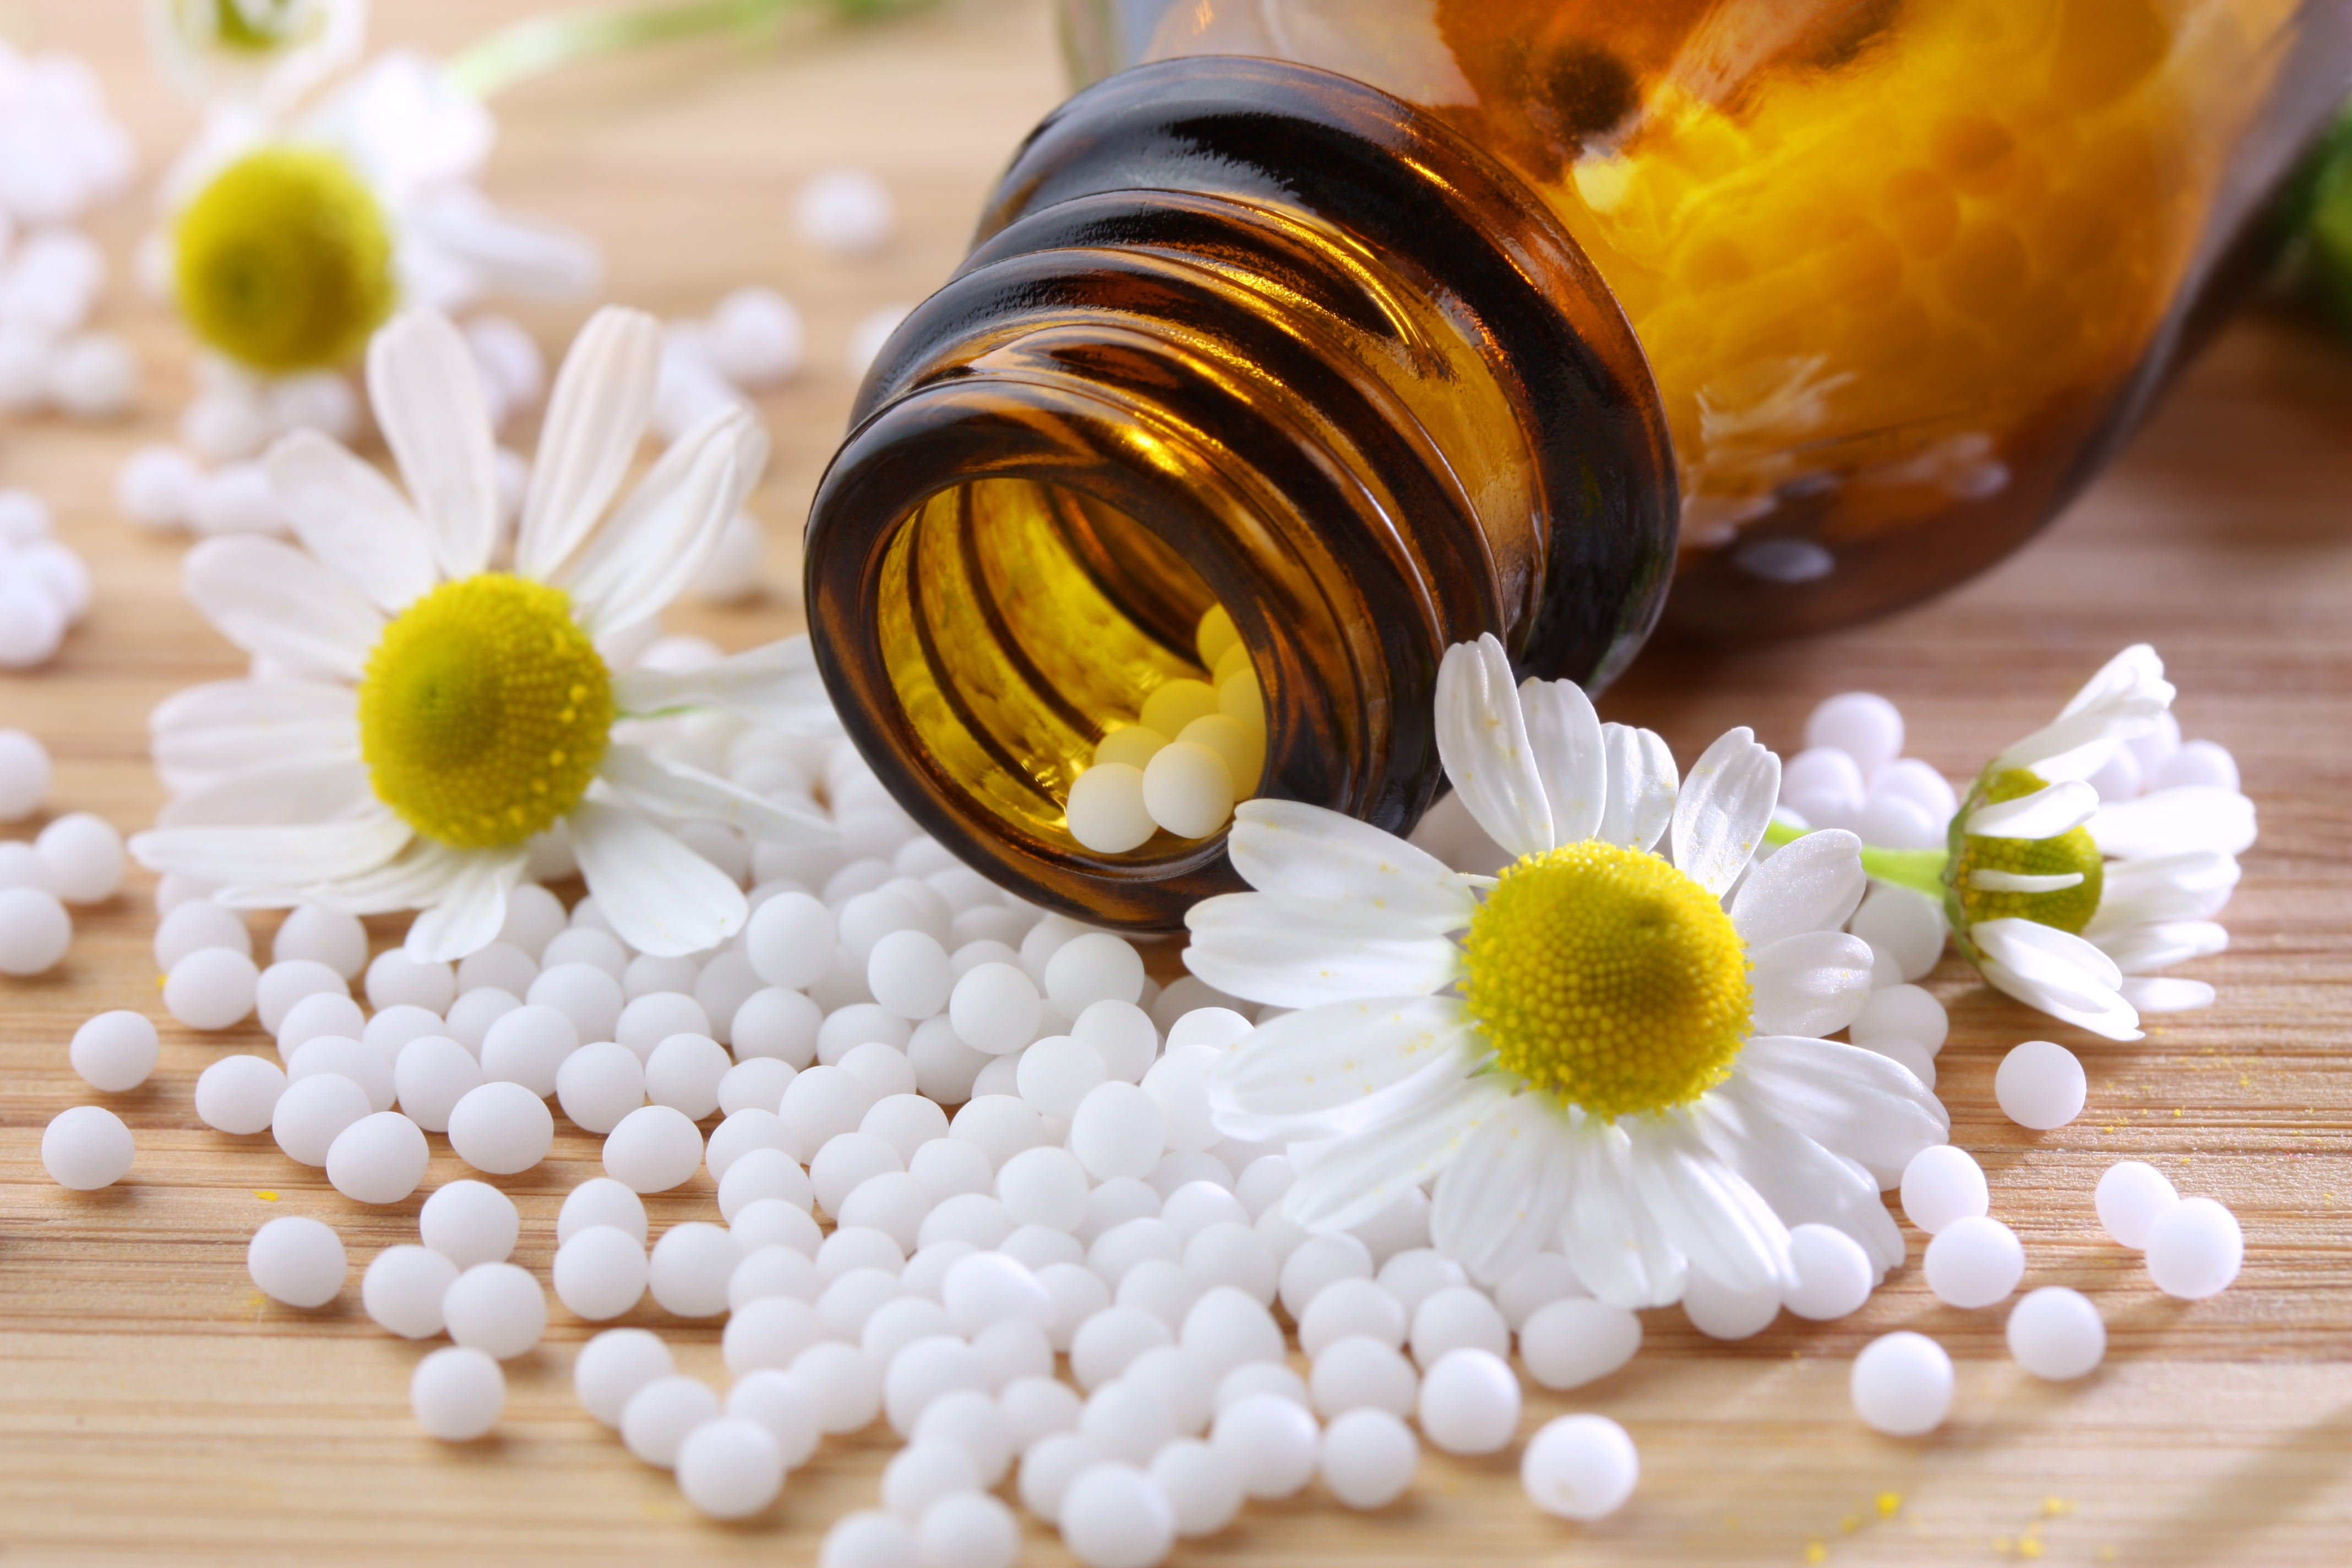 Homeopathic remedy derived from natural ingredients